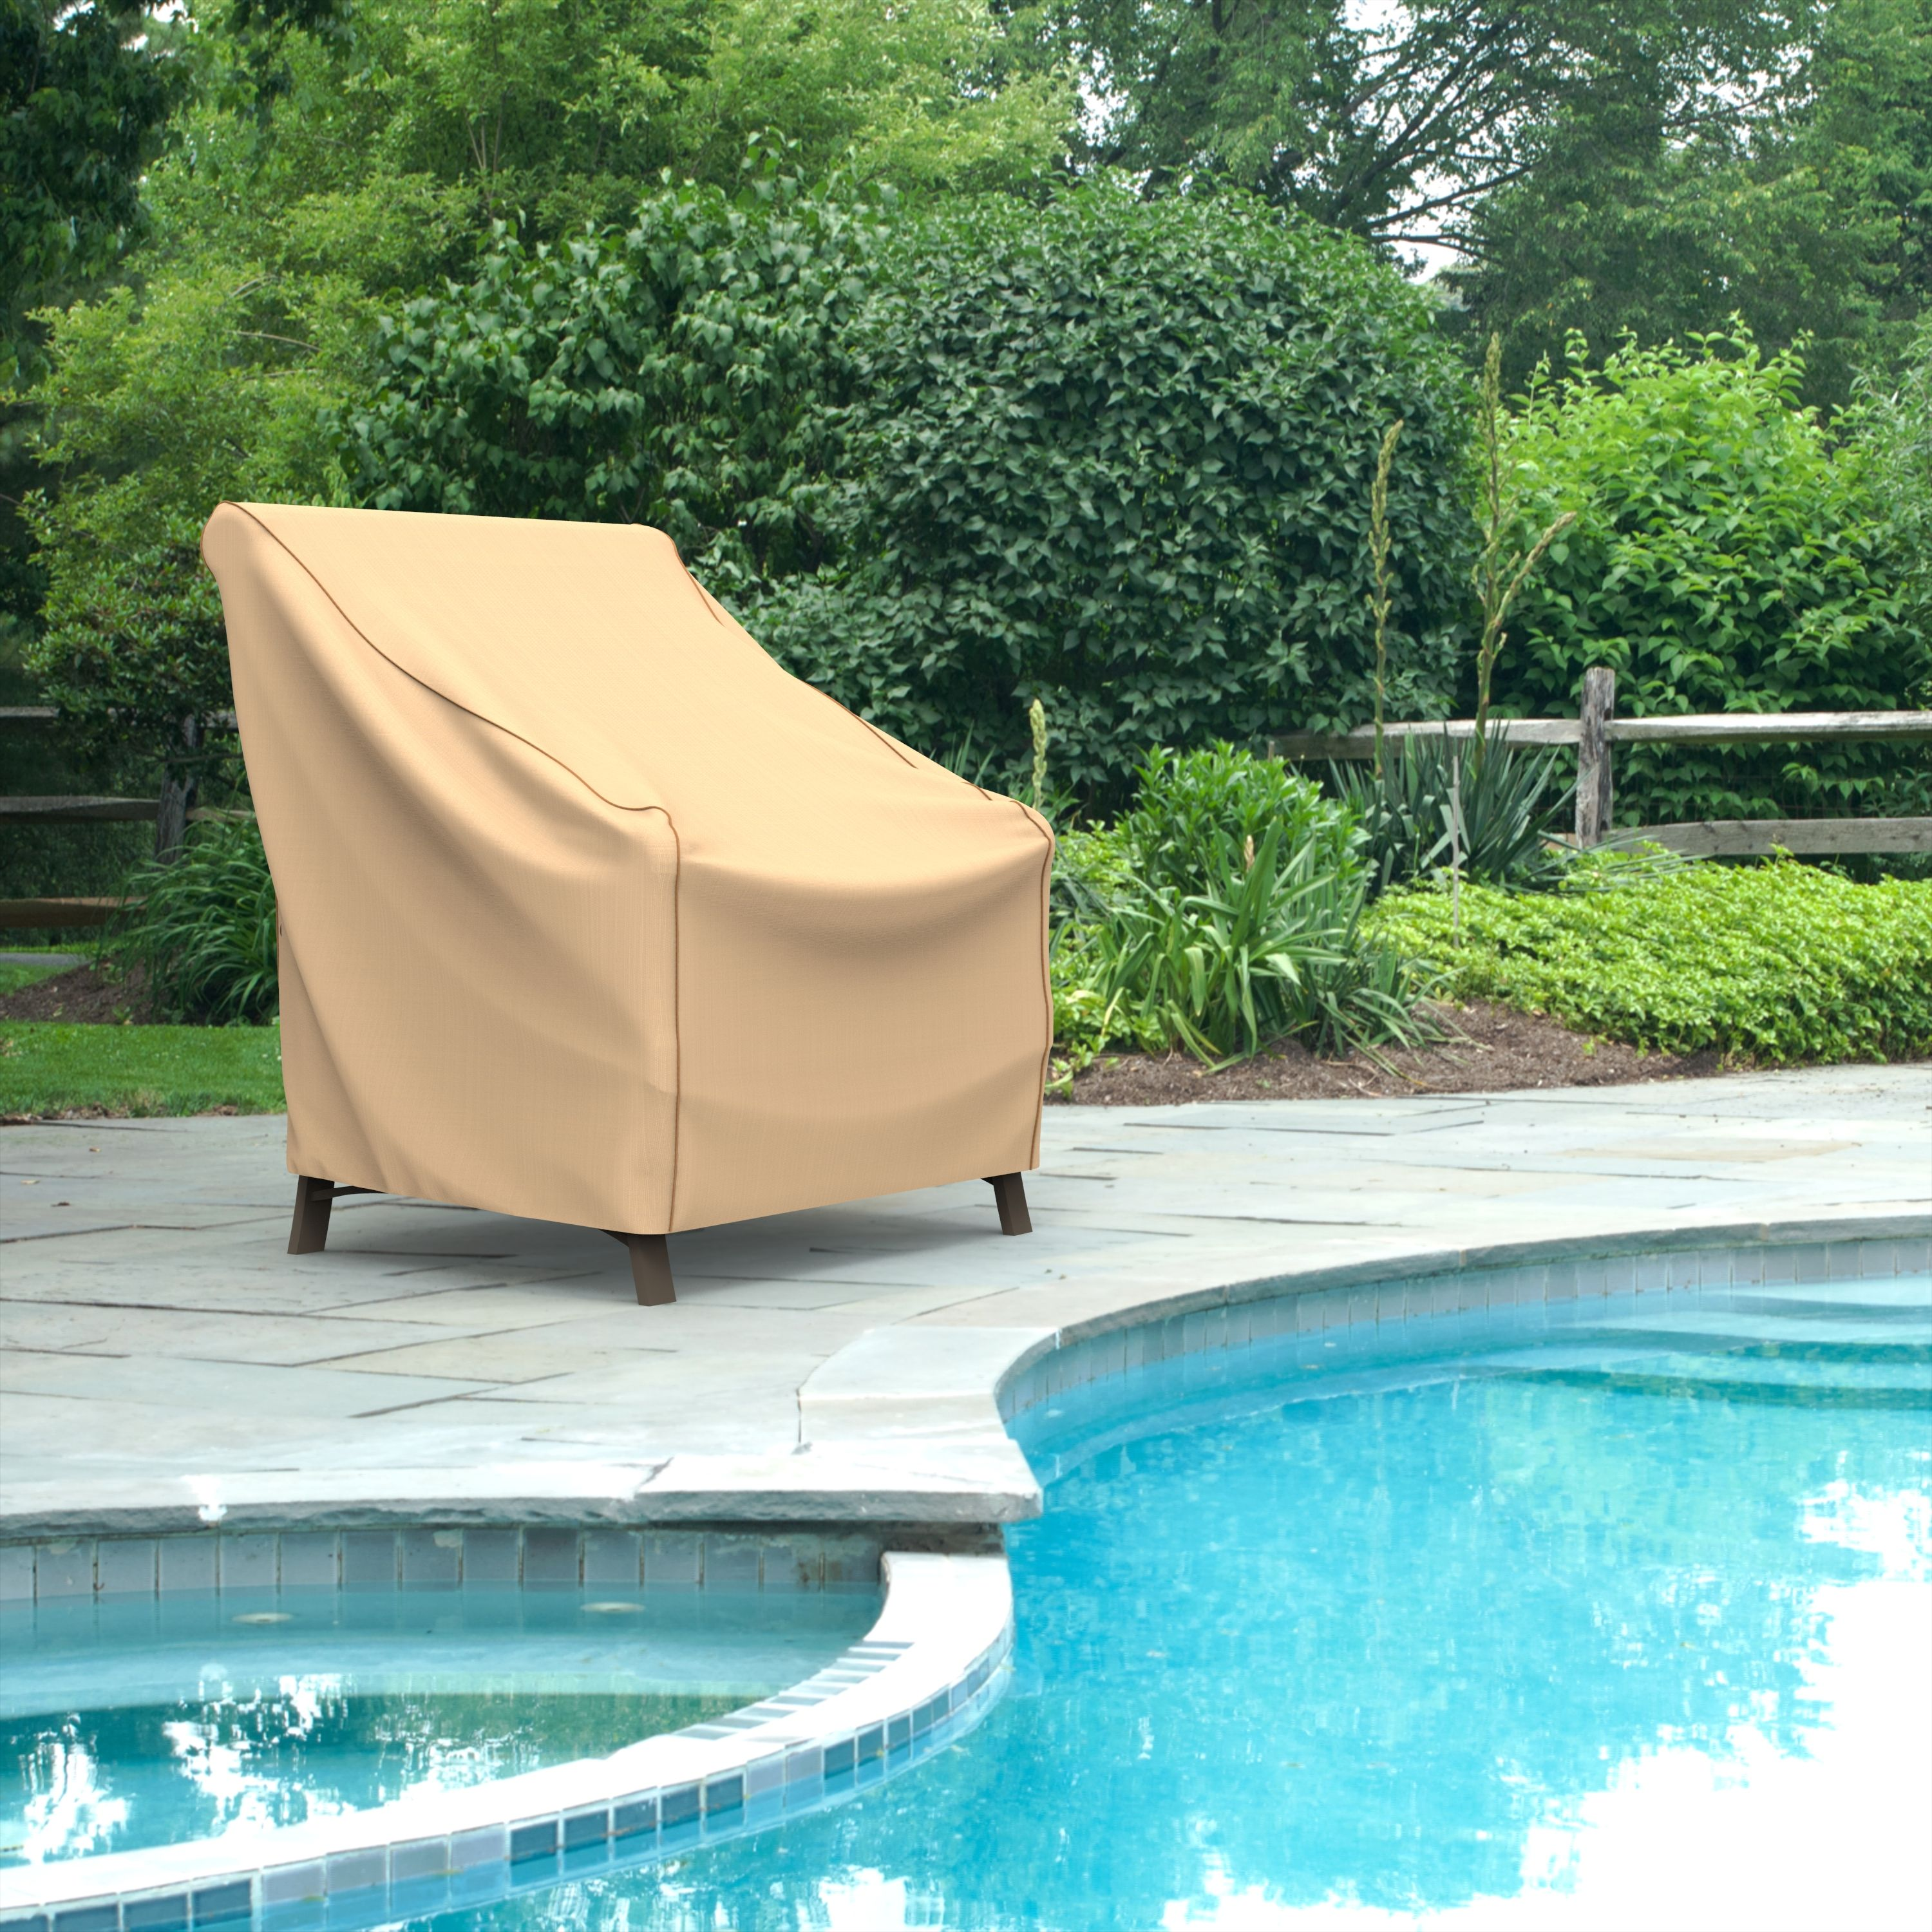 Budge XSmall Tan Patio Outdoor Chair Cover, Chelsea